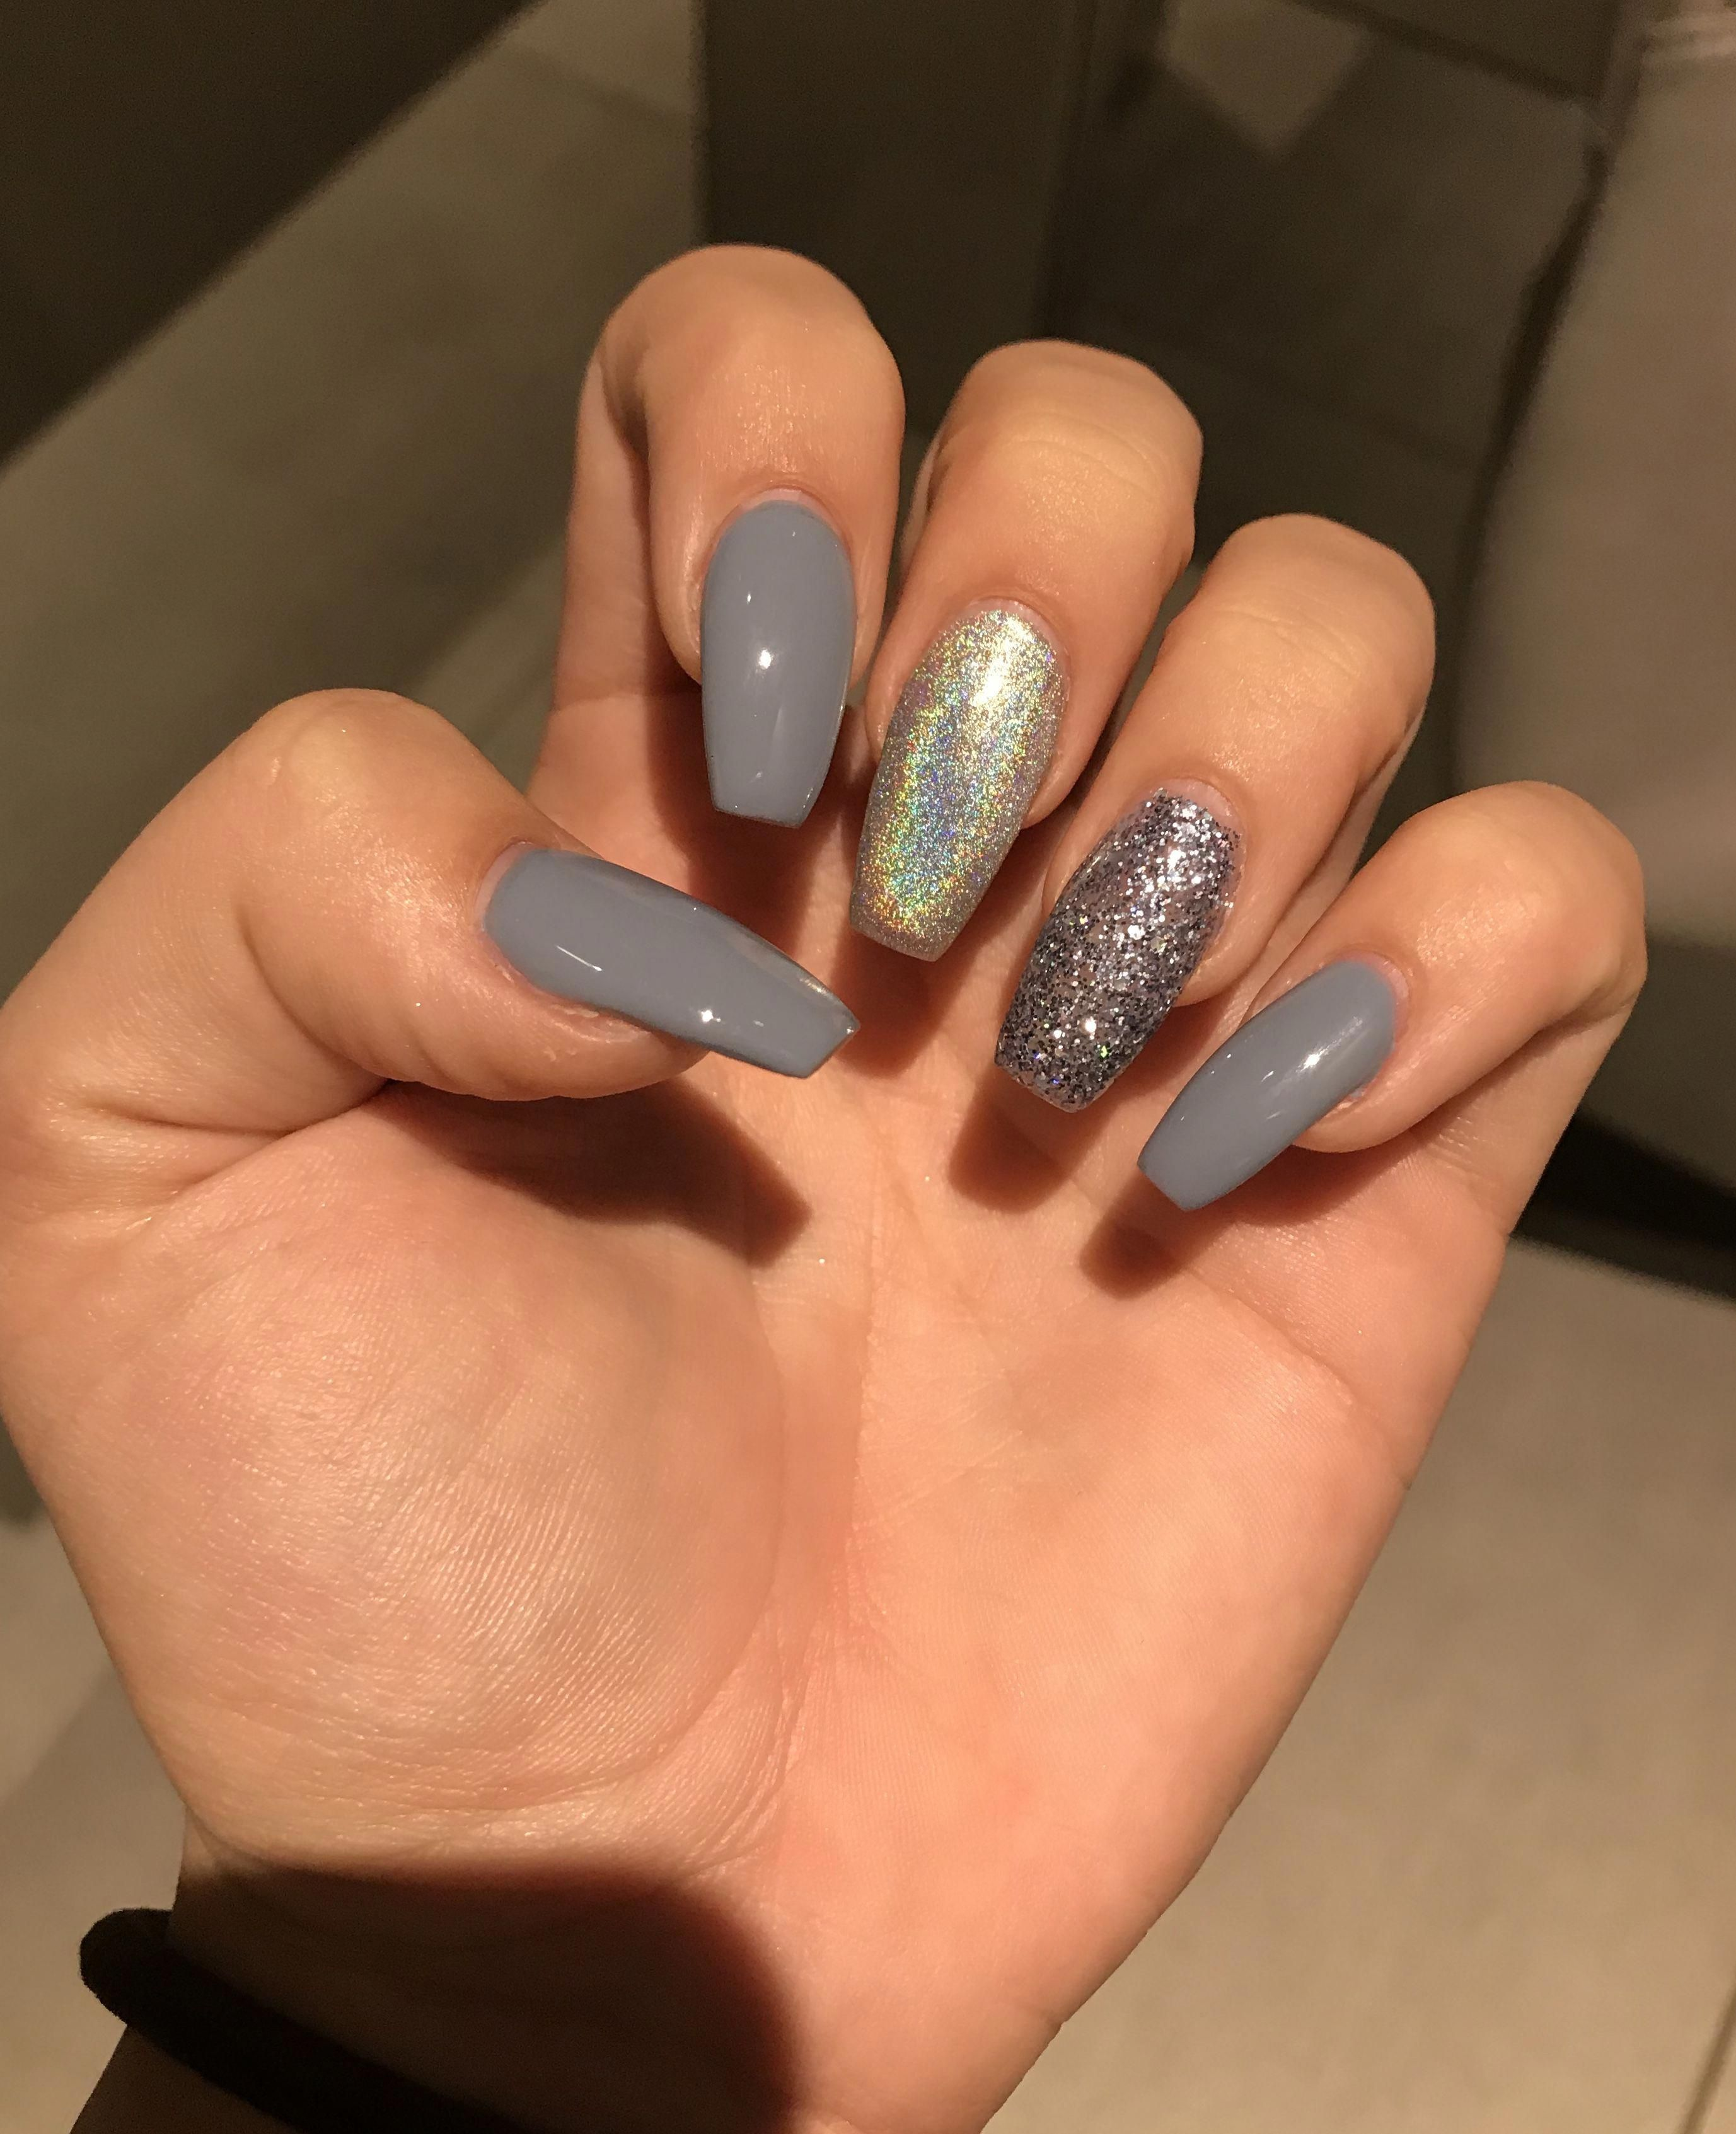 Acrylic Coffin Shaped Nails Nailscoffin Coffin Shape Nails Acrilic Nails Cute Acrylic Nails